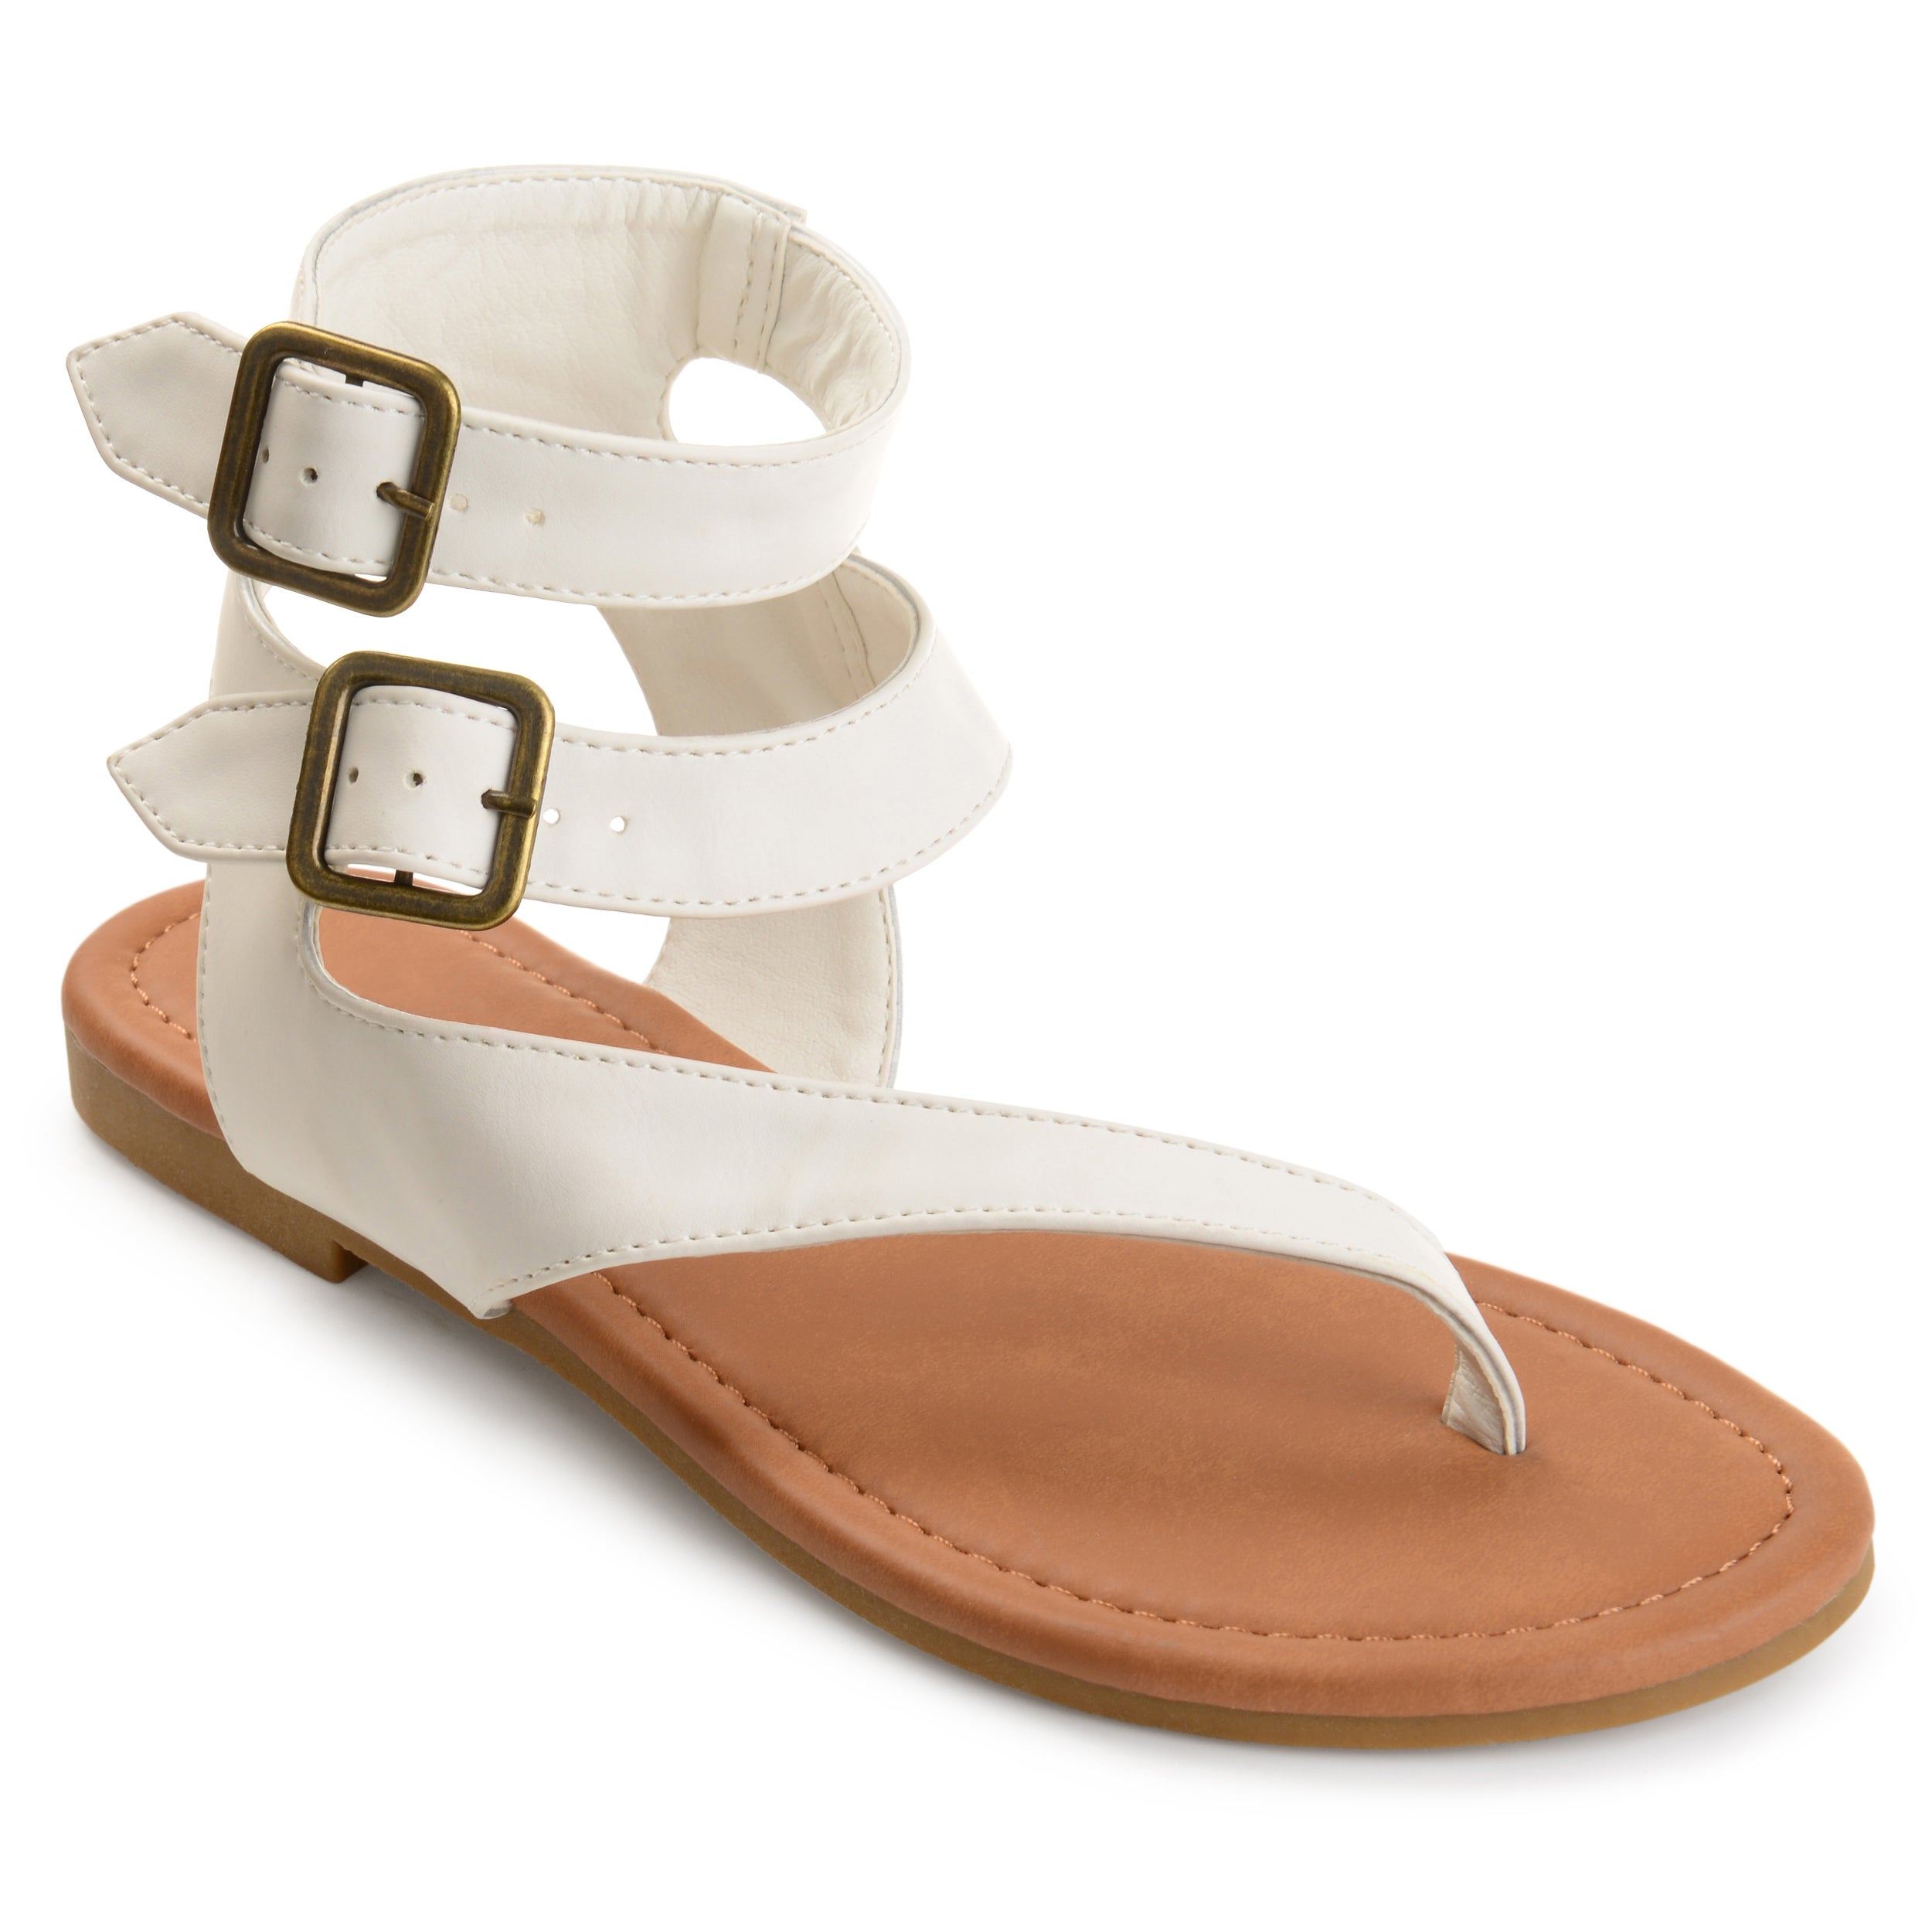 4a8f02abb9117 Shop Journee Collection Women s  Kyle  Double Wrap Buckle Thong Sandals -  On Sale - Free Shipping On Orders Over  45 - Overstock - 18515269